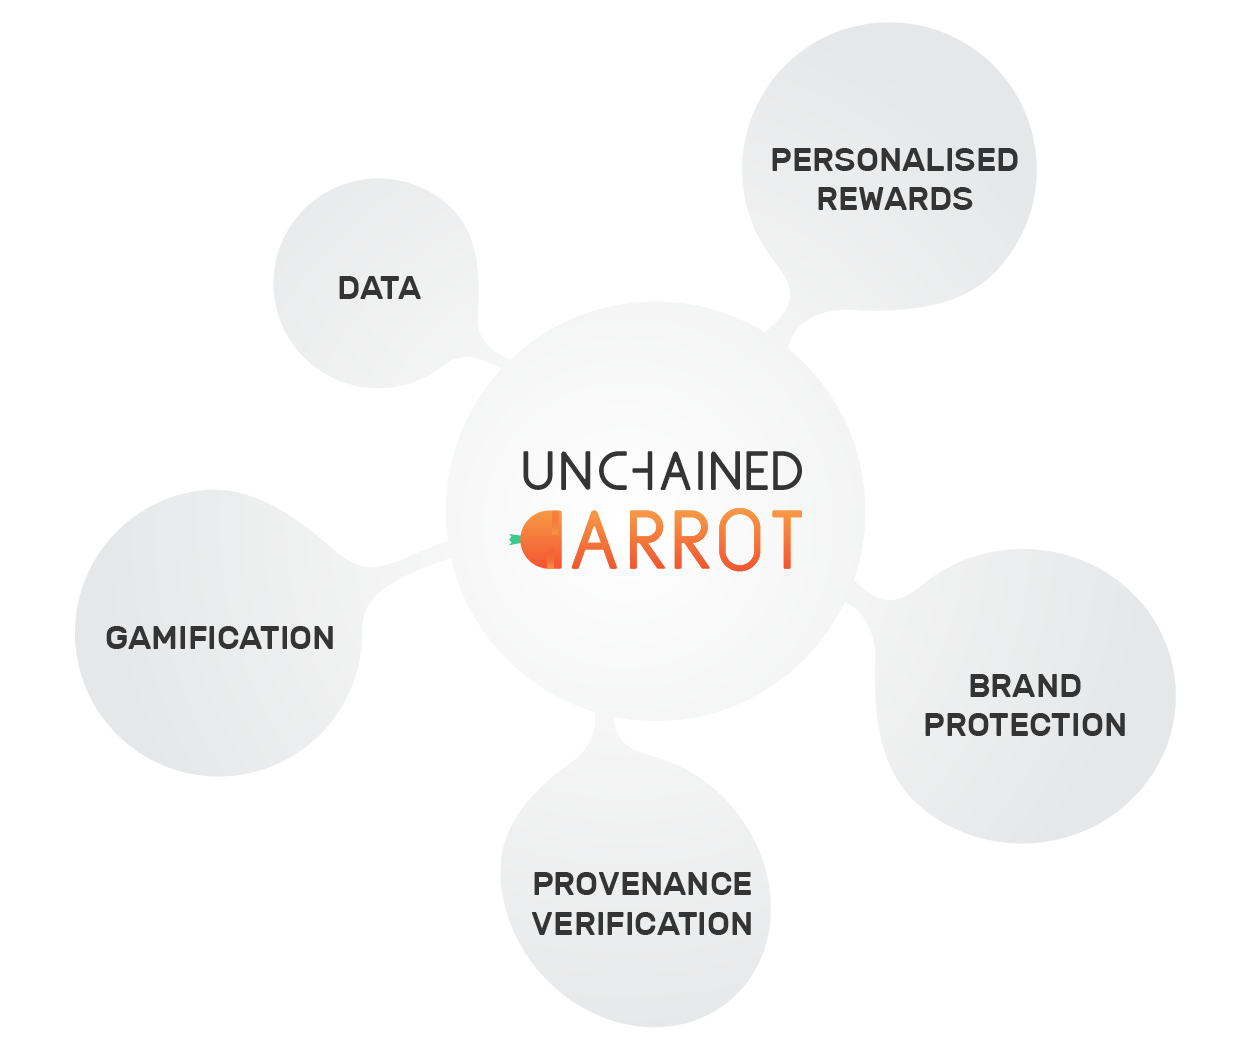 unchained carrot_logo-07